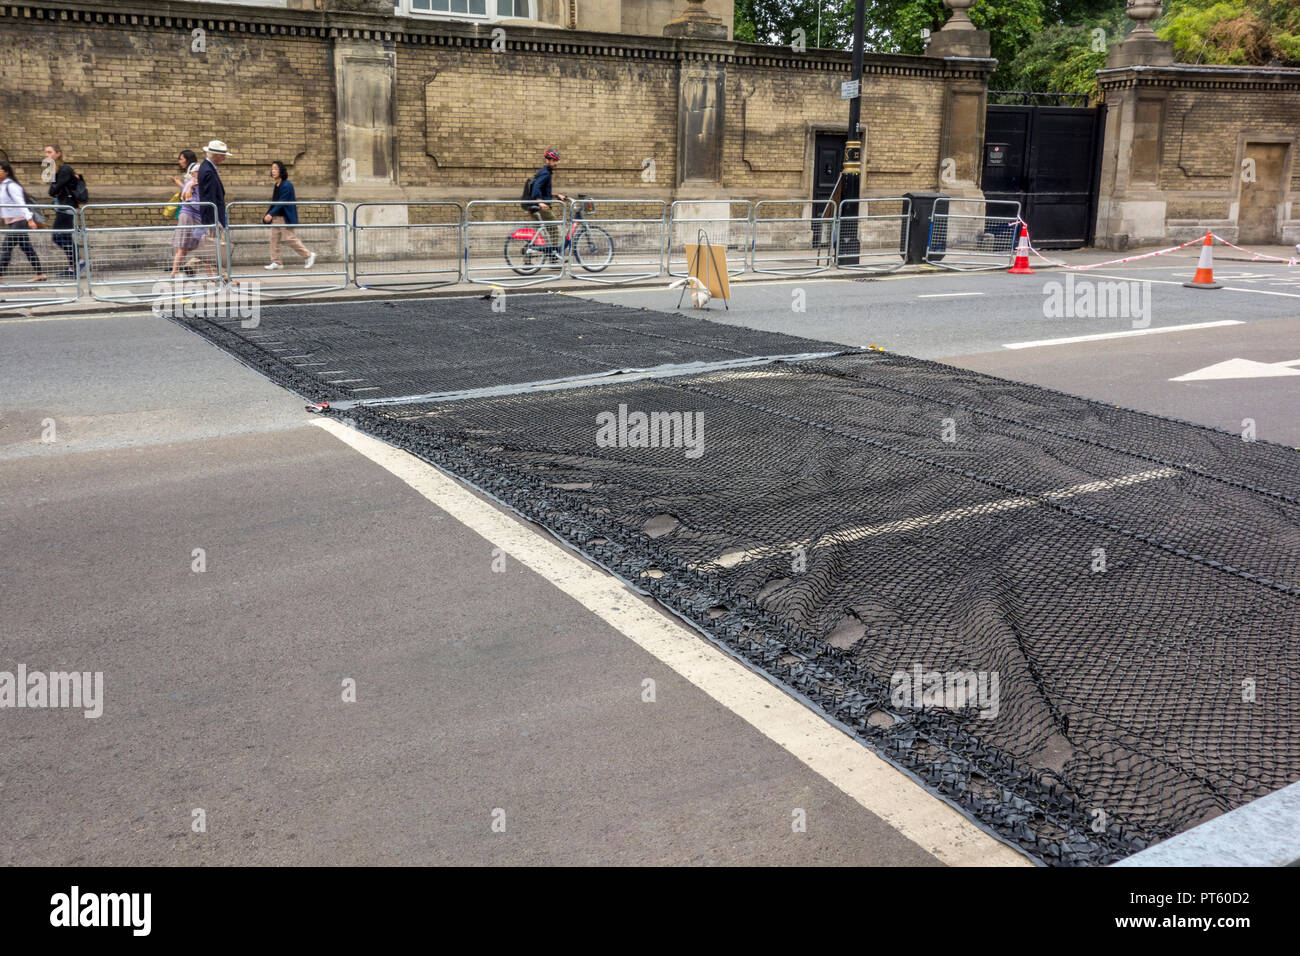 Police anti-terror 'Talon' device, a vehicle-stopping spiked net designed to stop vehicles up to 17 tonnes, Buckingham Gate Westminster, London - Stock Image